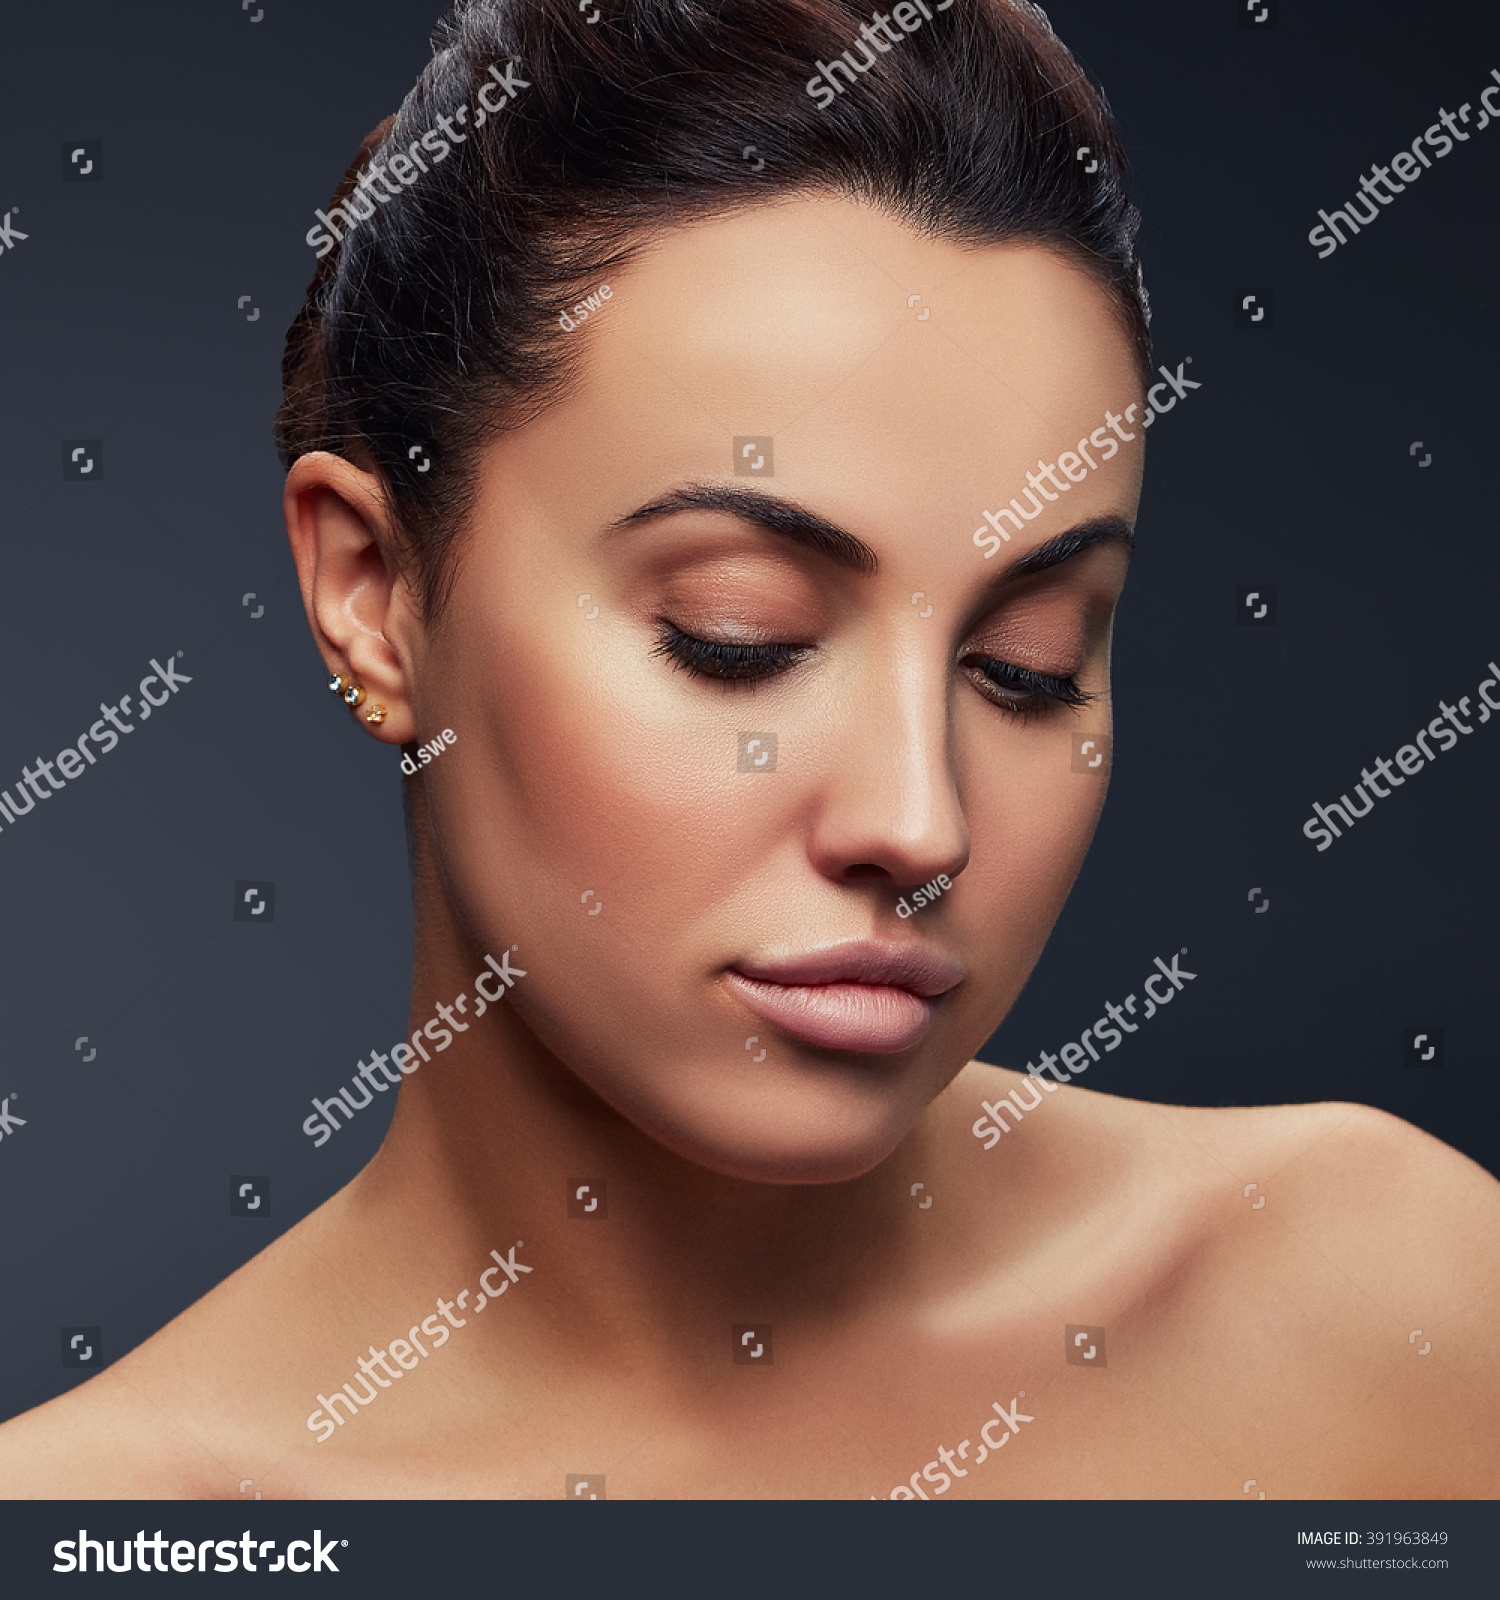 Beauty Fashion Portrait of Caucasian Young Girl with Natural Nude Make Up  with closed eyes and shoulders on purple gradient background. | EZ Canvas